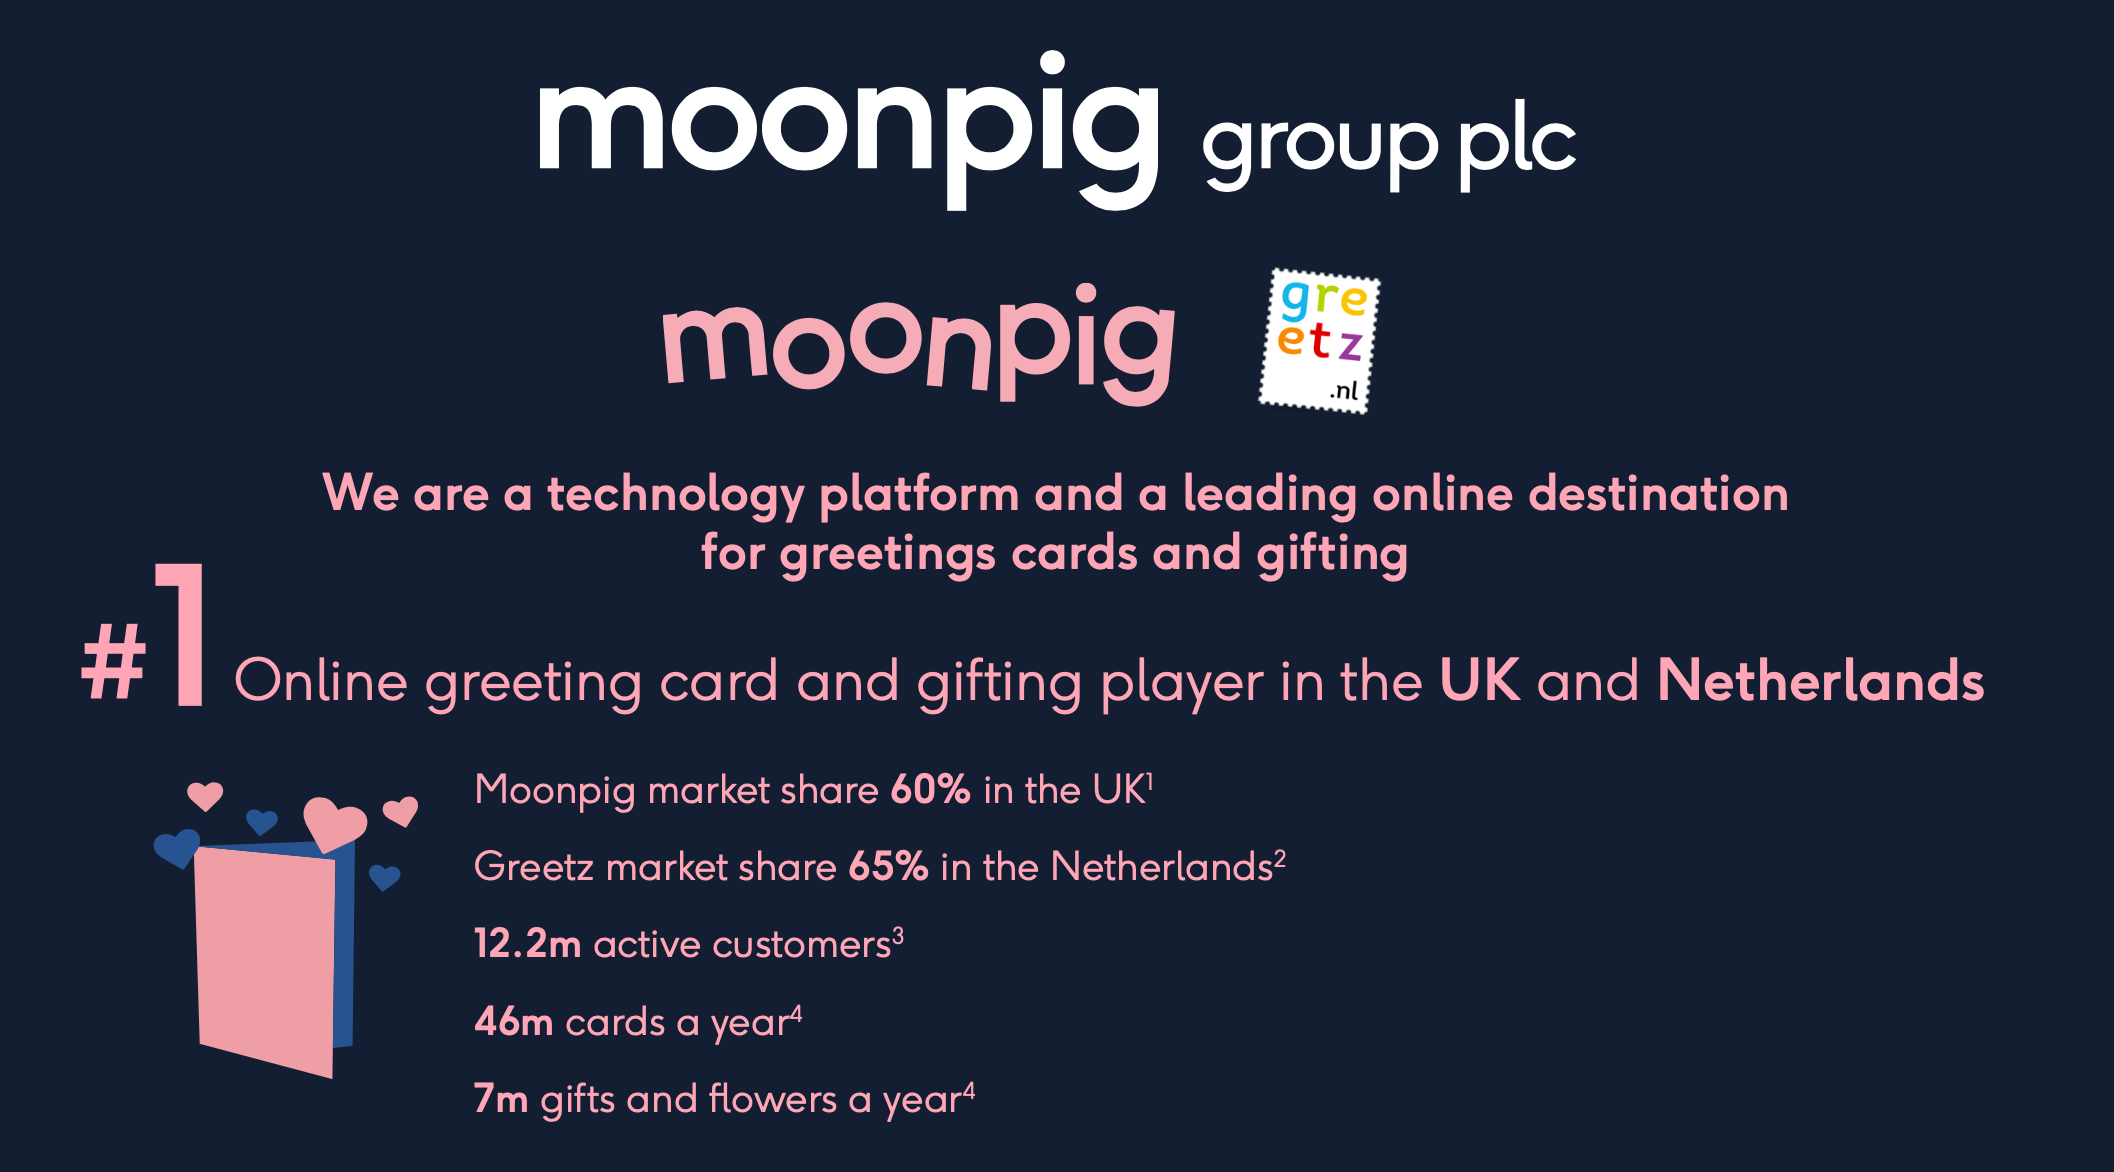 Above: The IPO will be based on the growth potential as the Moonpig Group leverages its market leading position.